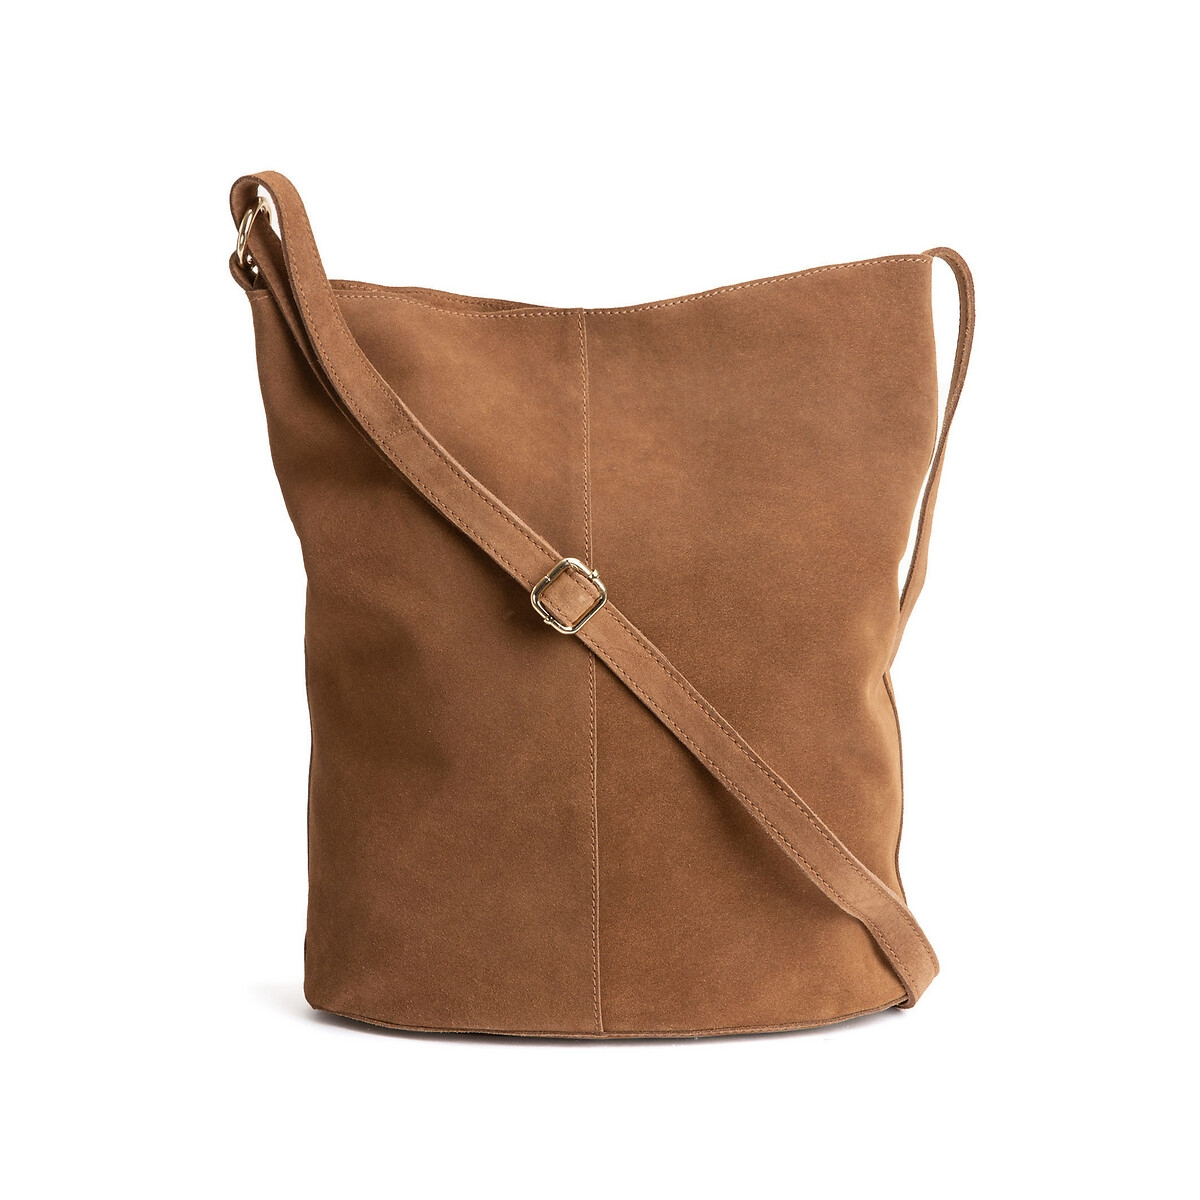 Bolso hobo de piel de LA REDOUTE COLLECTIONS